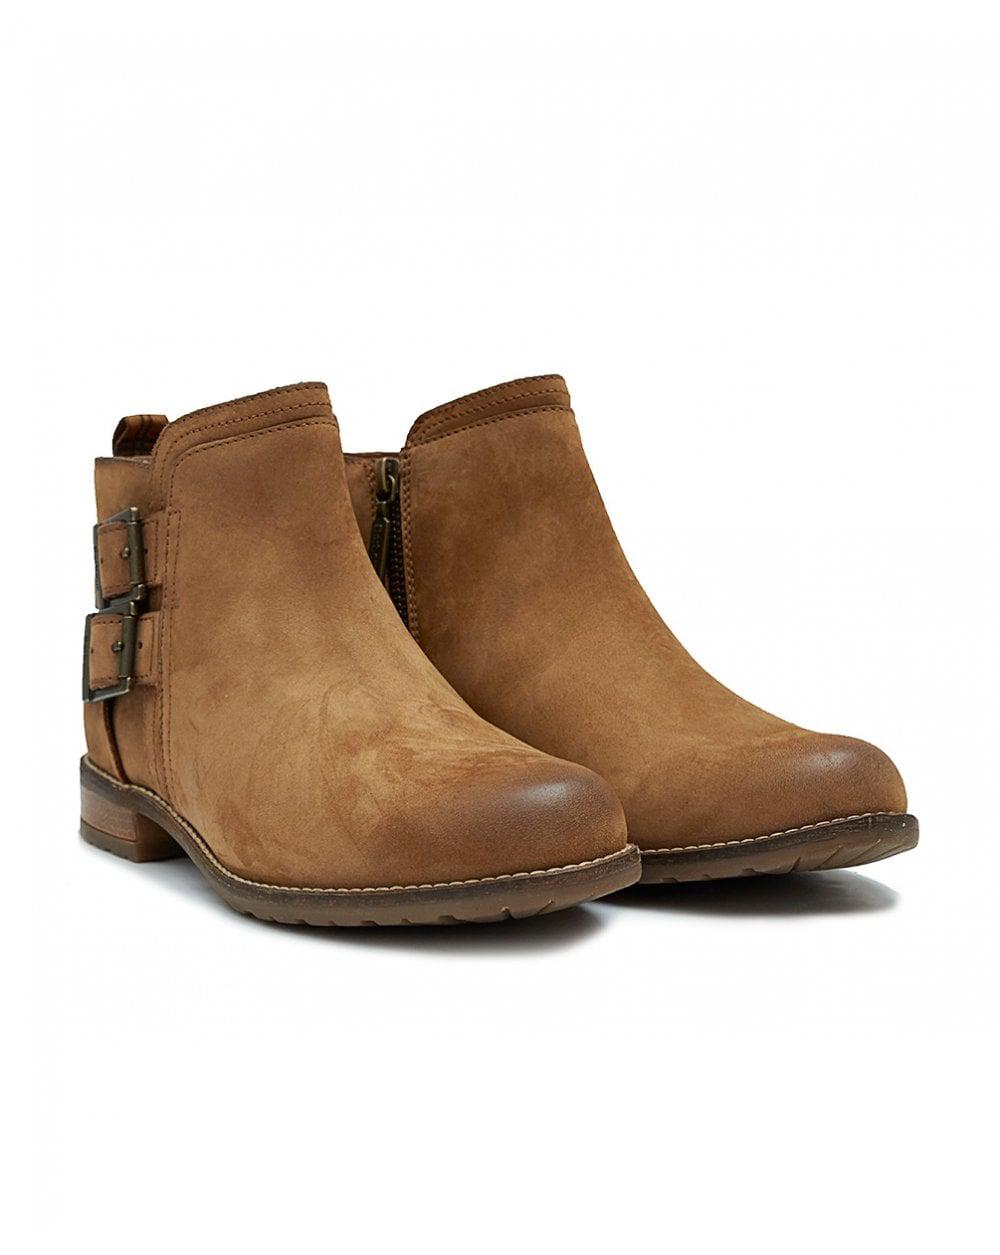 bc814078 Lyst - Barbour Sarah Buckle Ankle Boots in Brown